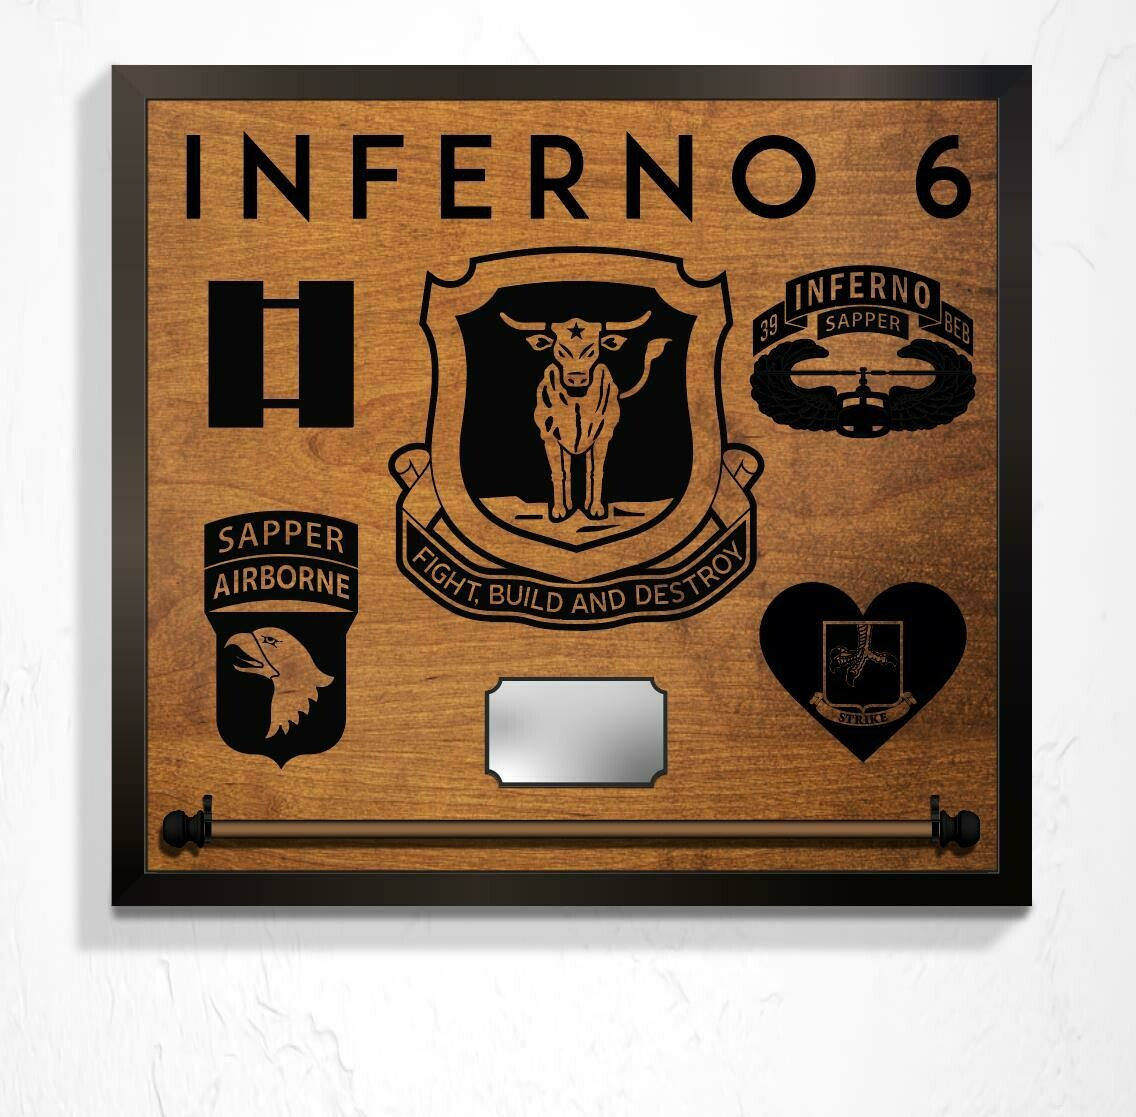 "B CO 39 BEB, Guidon Mount and Custom Callsign - Plaque 25"" x 23"""